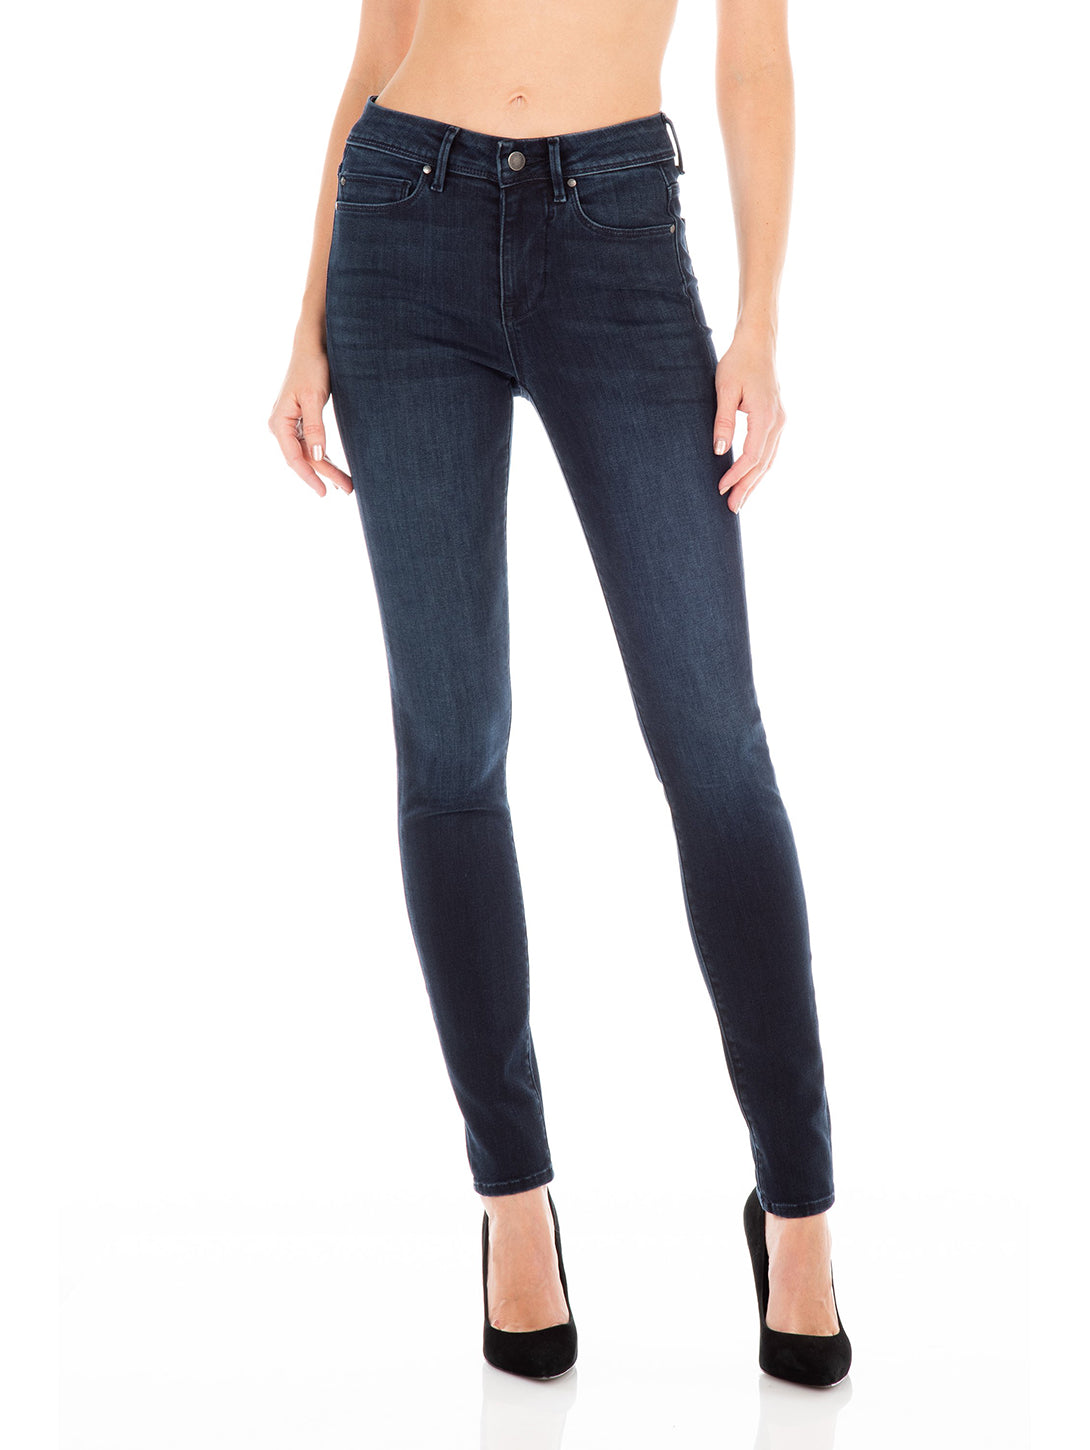 Sola Stacked Mid Rise Skinny Jean - Madrid-Fidelity Denim-Over the Rainbow